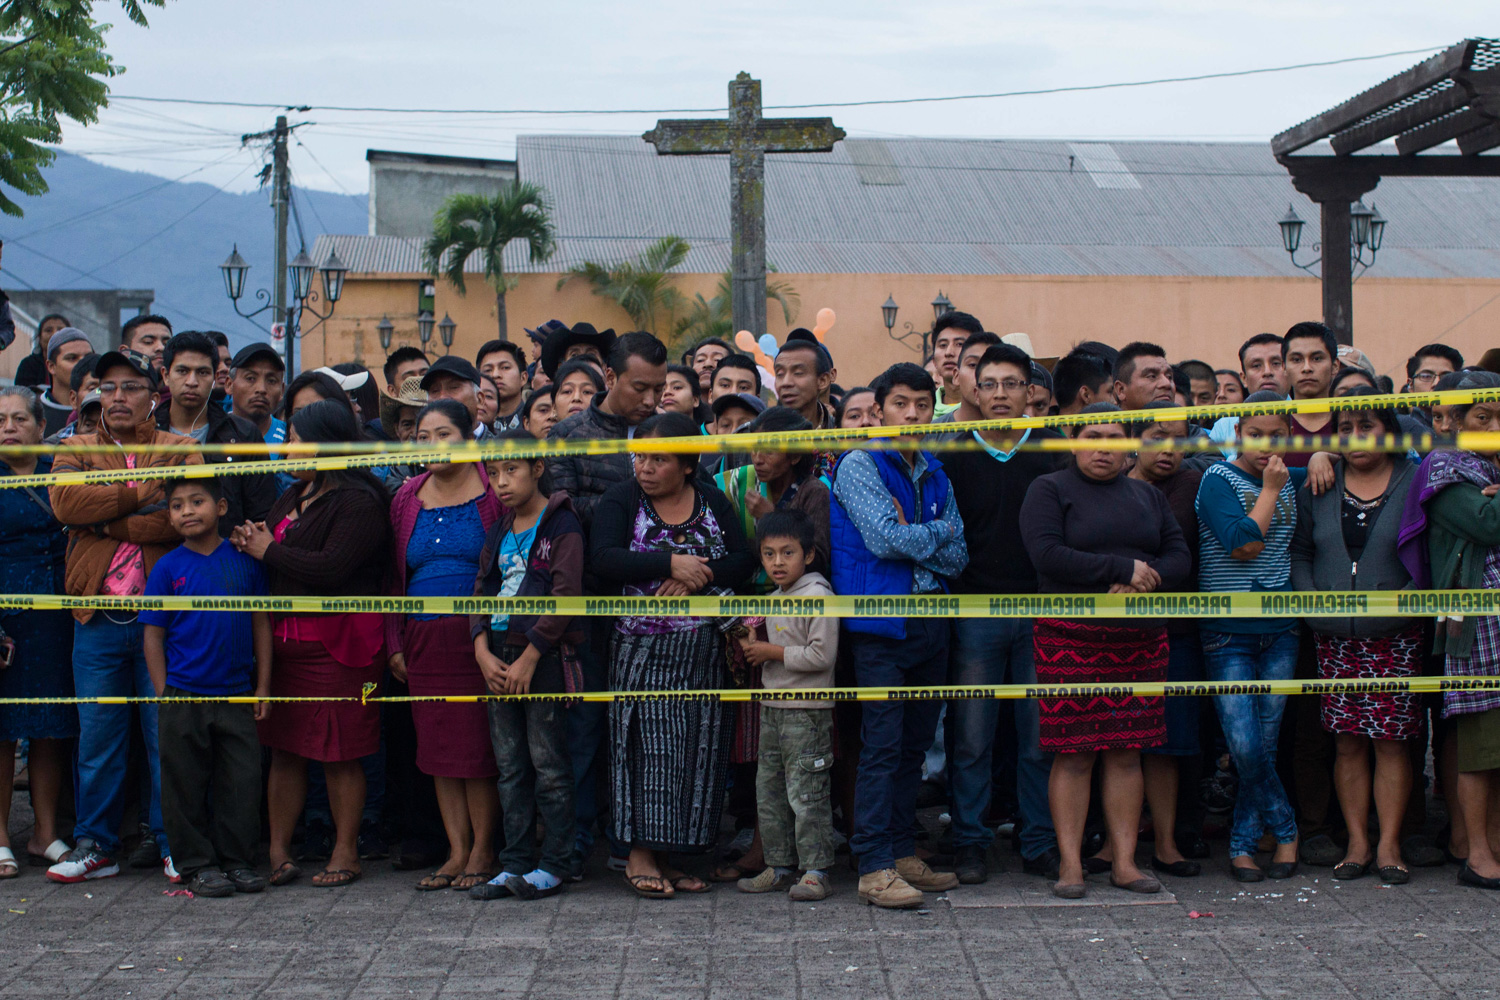 "<div class=""meta image-caption""><div class=""origin-logo origin-image none""><span>none</span></div><span class=""caption-text"">Neighbors stand outside a temporary morgue near Volcan de Fuego or Volcano of Fire in Alotenango, Guatemala, Sunday, June 3, 2018. (Luis Soto/AP Photo)</span></div>"